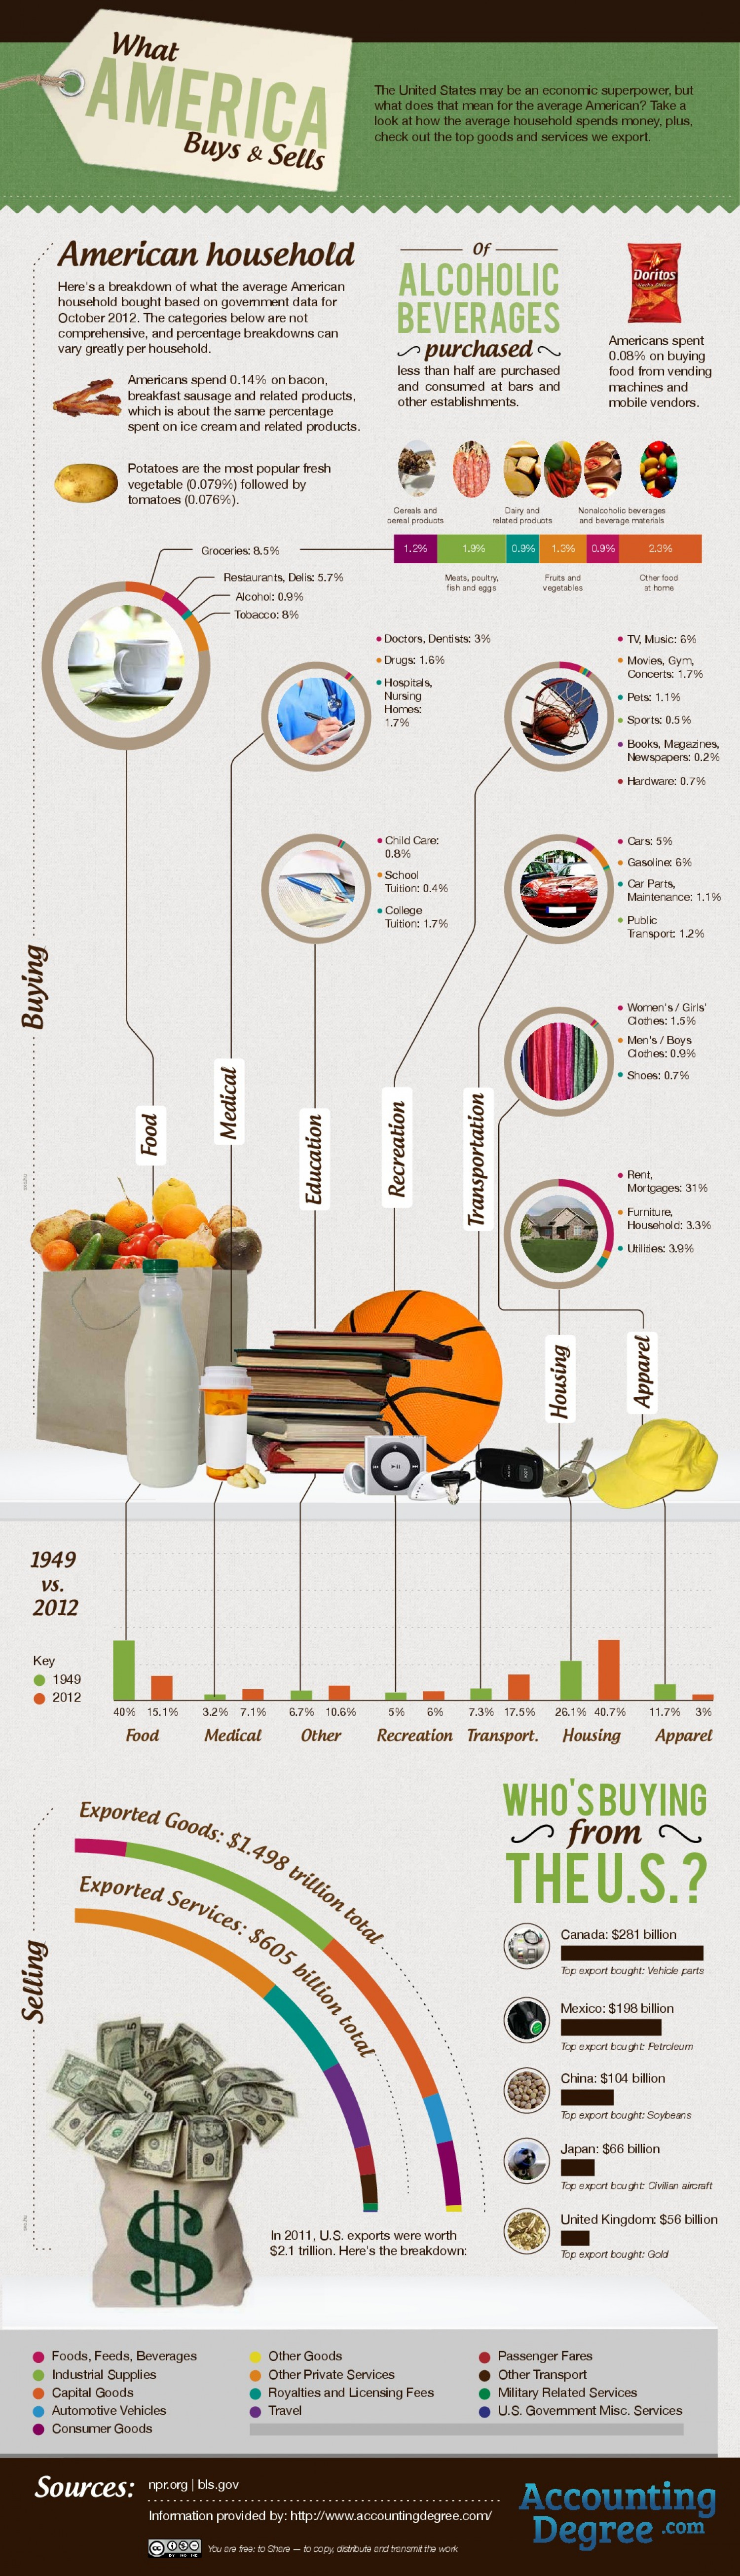 What America Buys and Sells Infographic